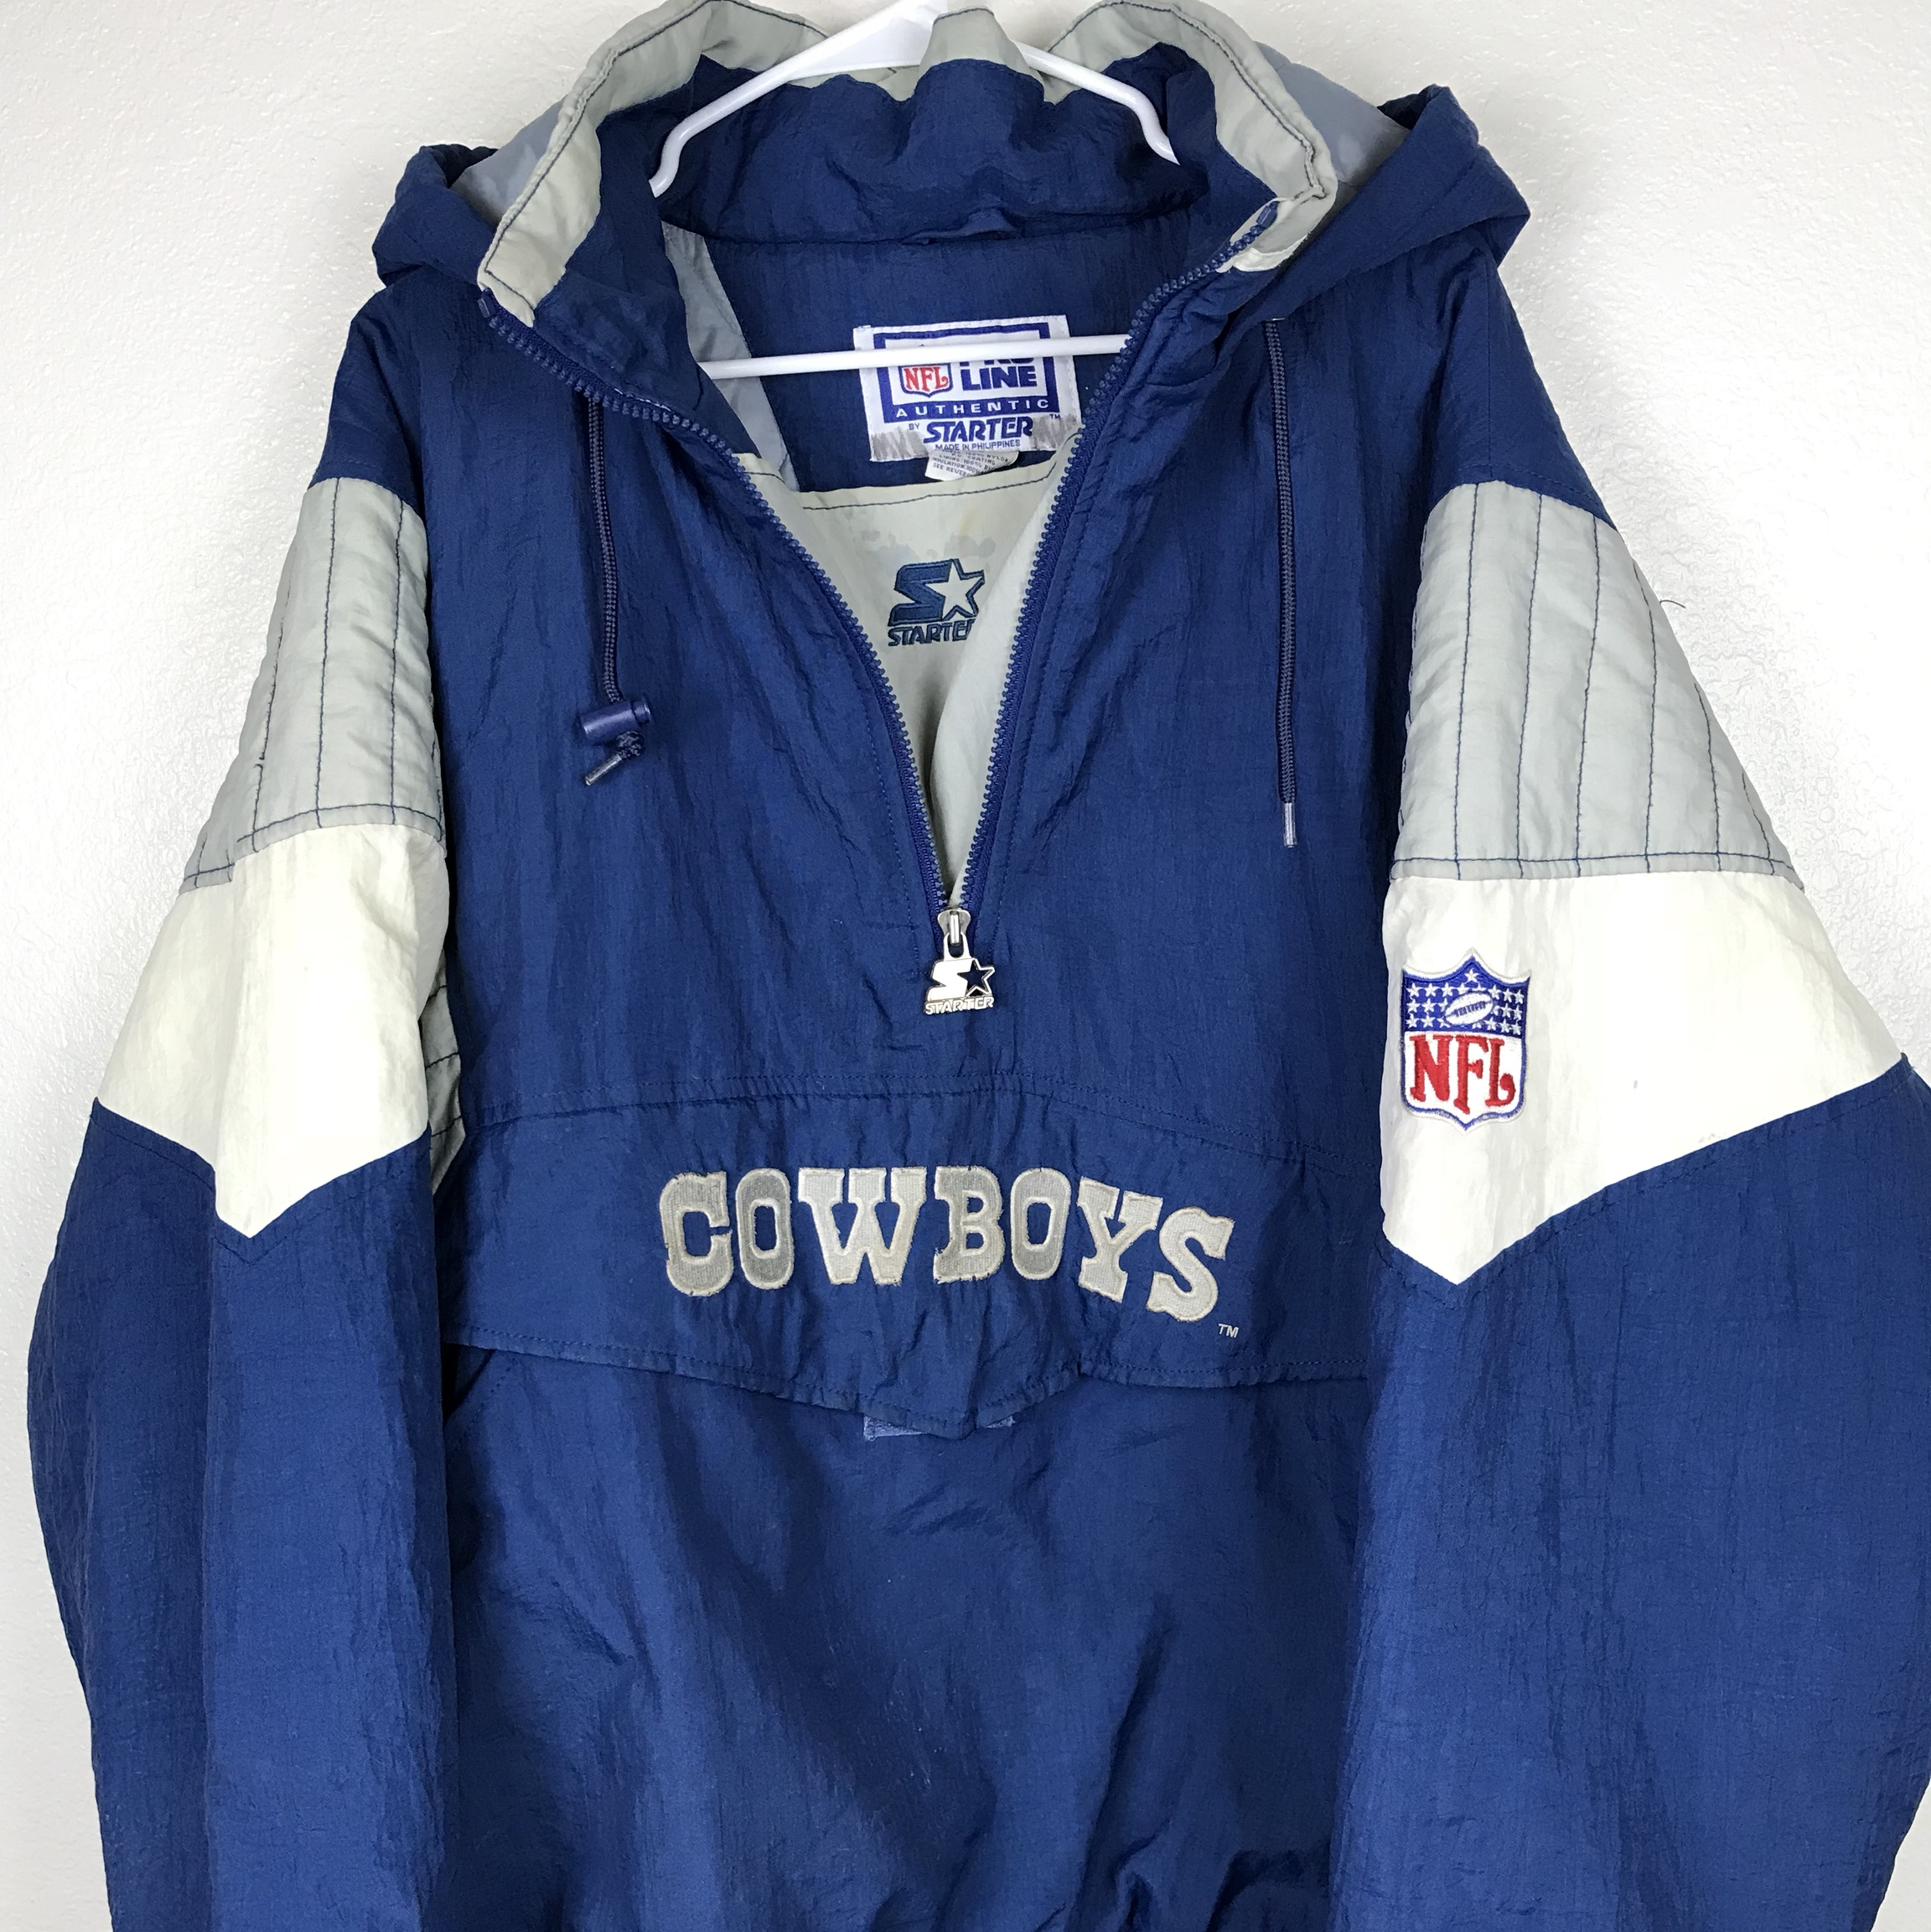 sneakers for cheap cb81b 8c6a3 Dallas Cowboys 90s Starter Vintage Heavy Windbreaker ...